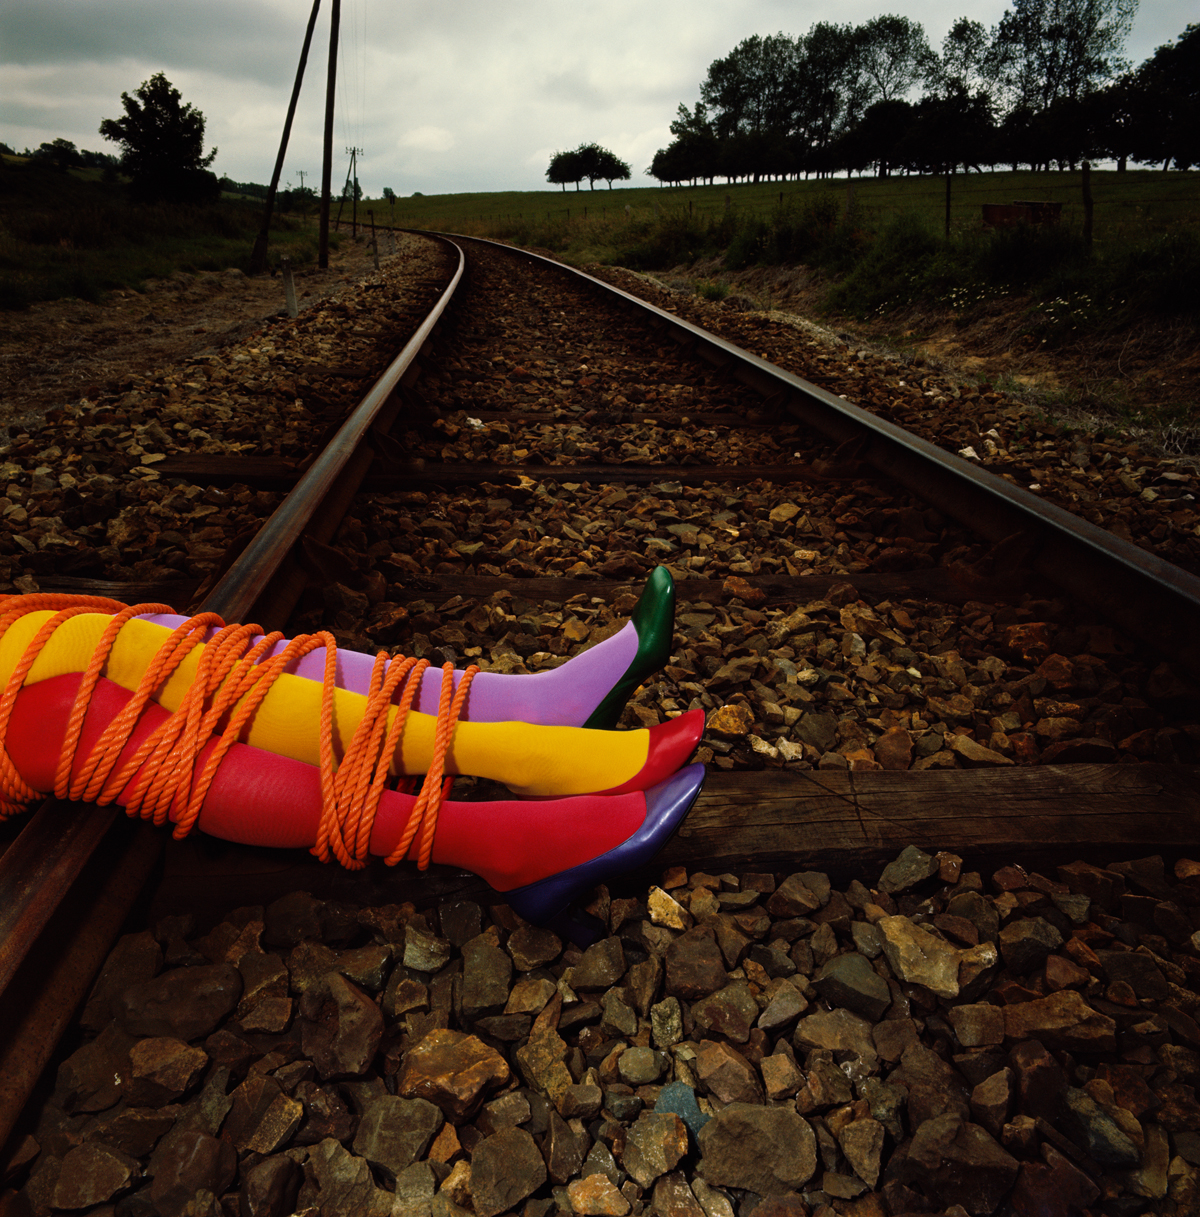 7. Charles Jourdan, Autumn 1970 © Guy Bourdin